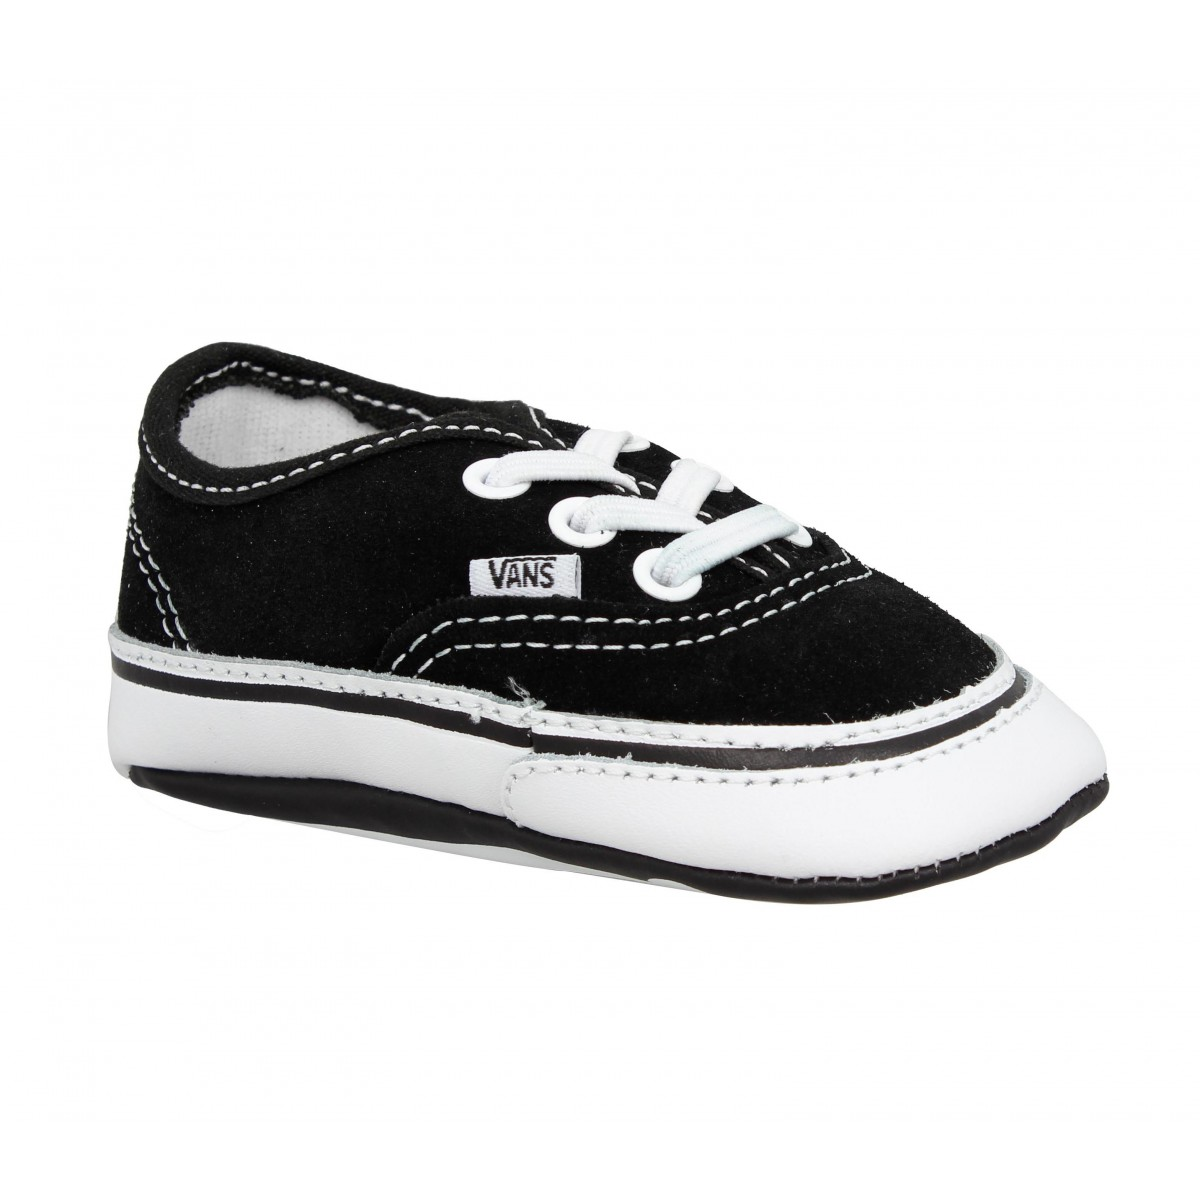 Baskets VANS Authentic Bébé velours Enfant Noir